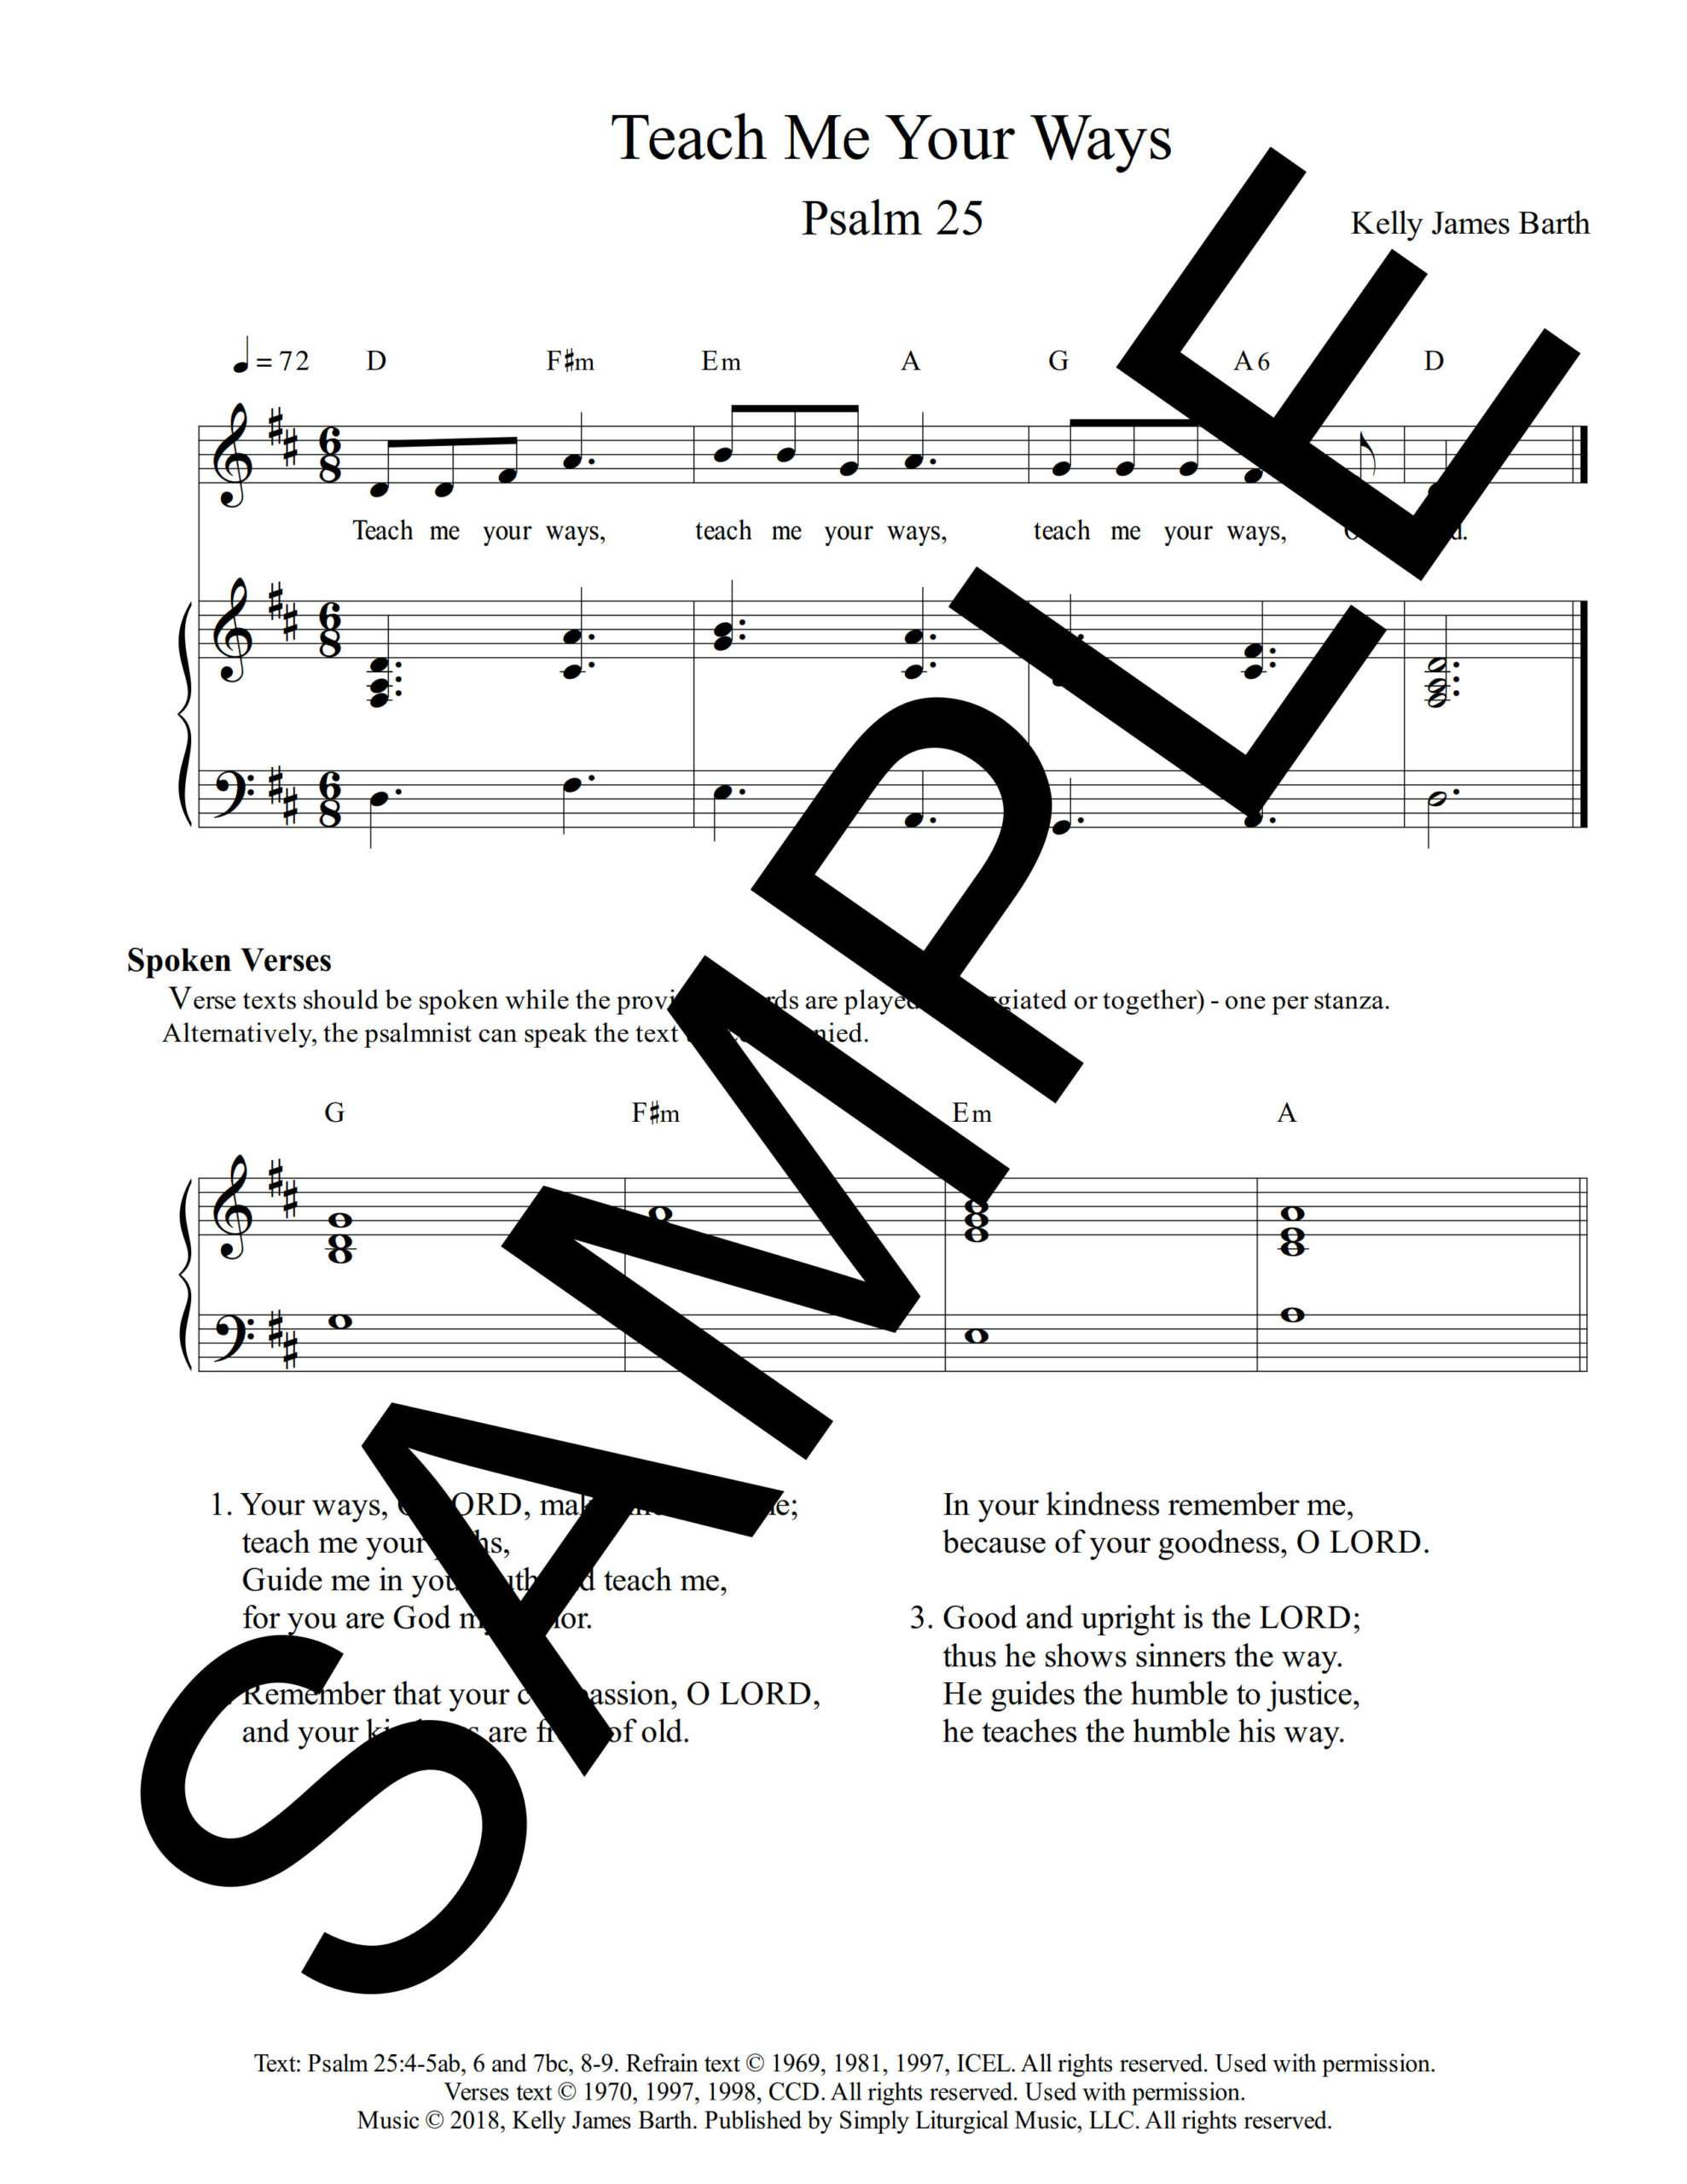 Psalm 25 Teach Me Your Ways Barth Sample Sheet Music 1 png